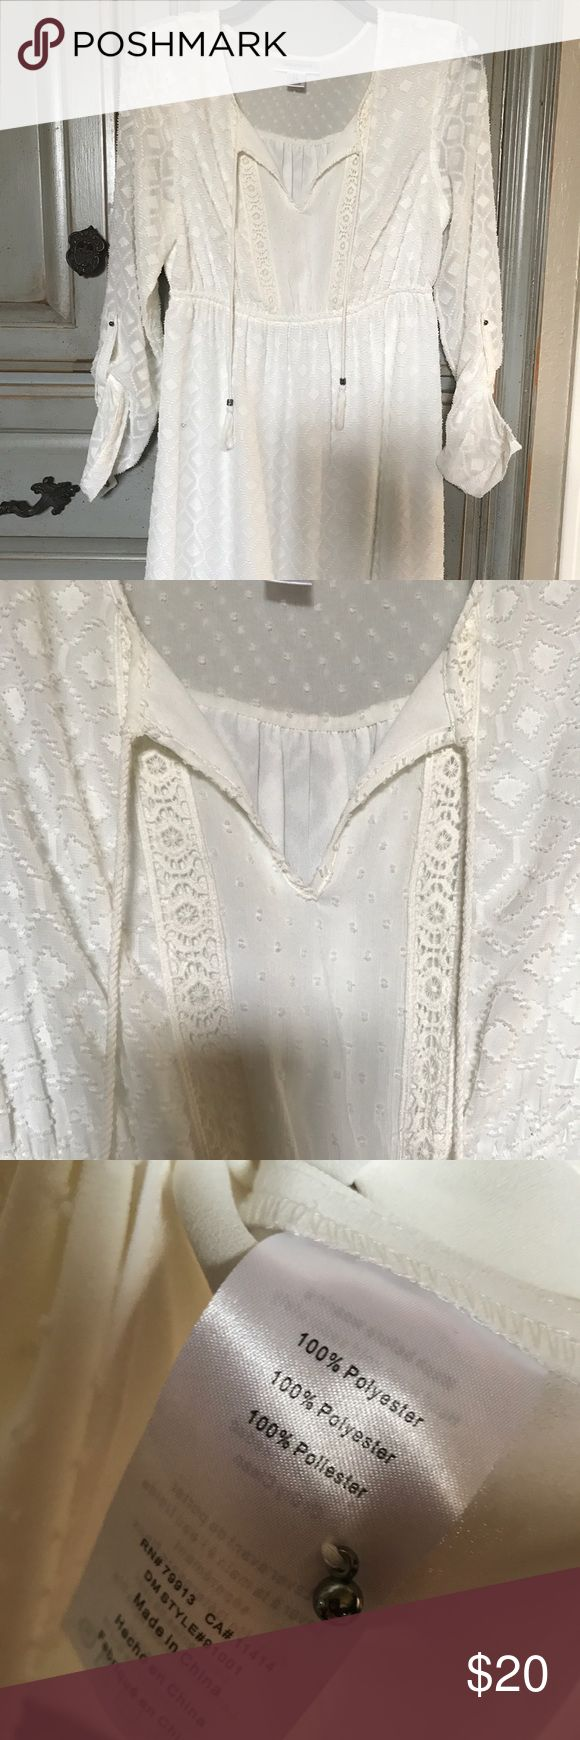 Motherhood Maternity Cream Dress Size Small Only worn once. Has a pretty sheer Aztec pattern. Lined. Super cute on! Wouldn't have to be maternity! Size small. Motherhood Maternity Dresses